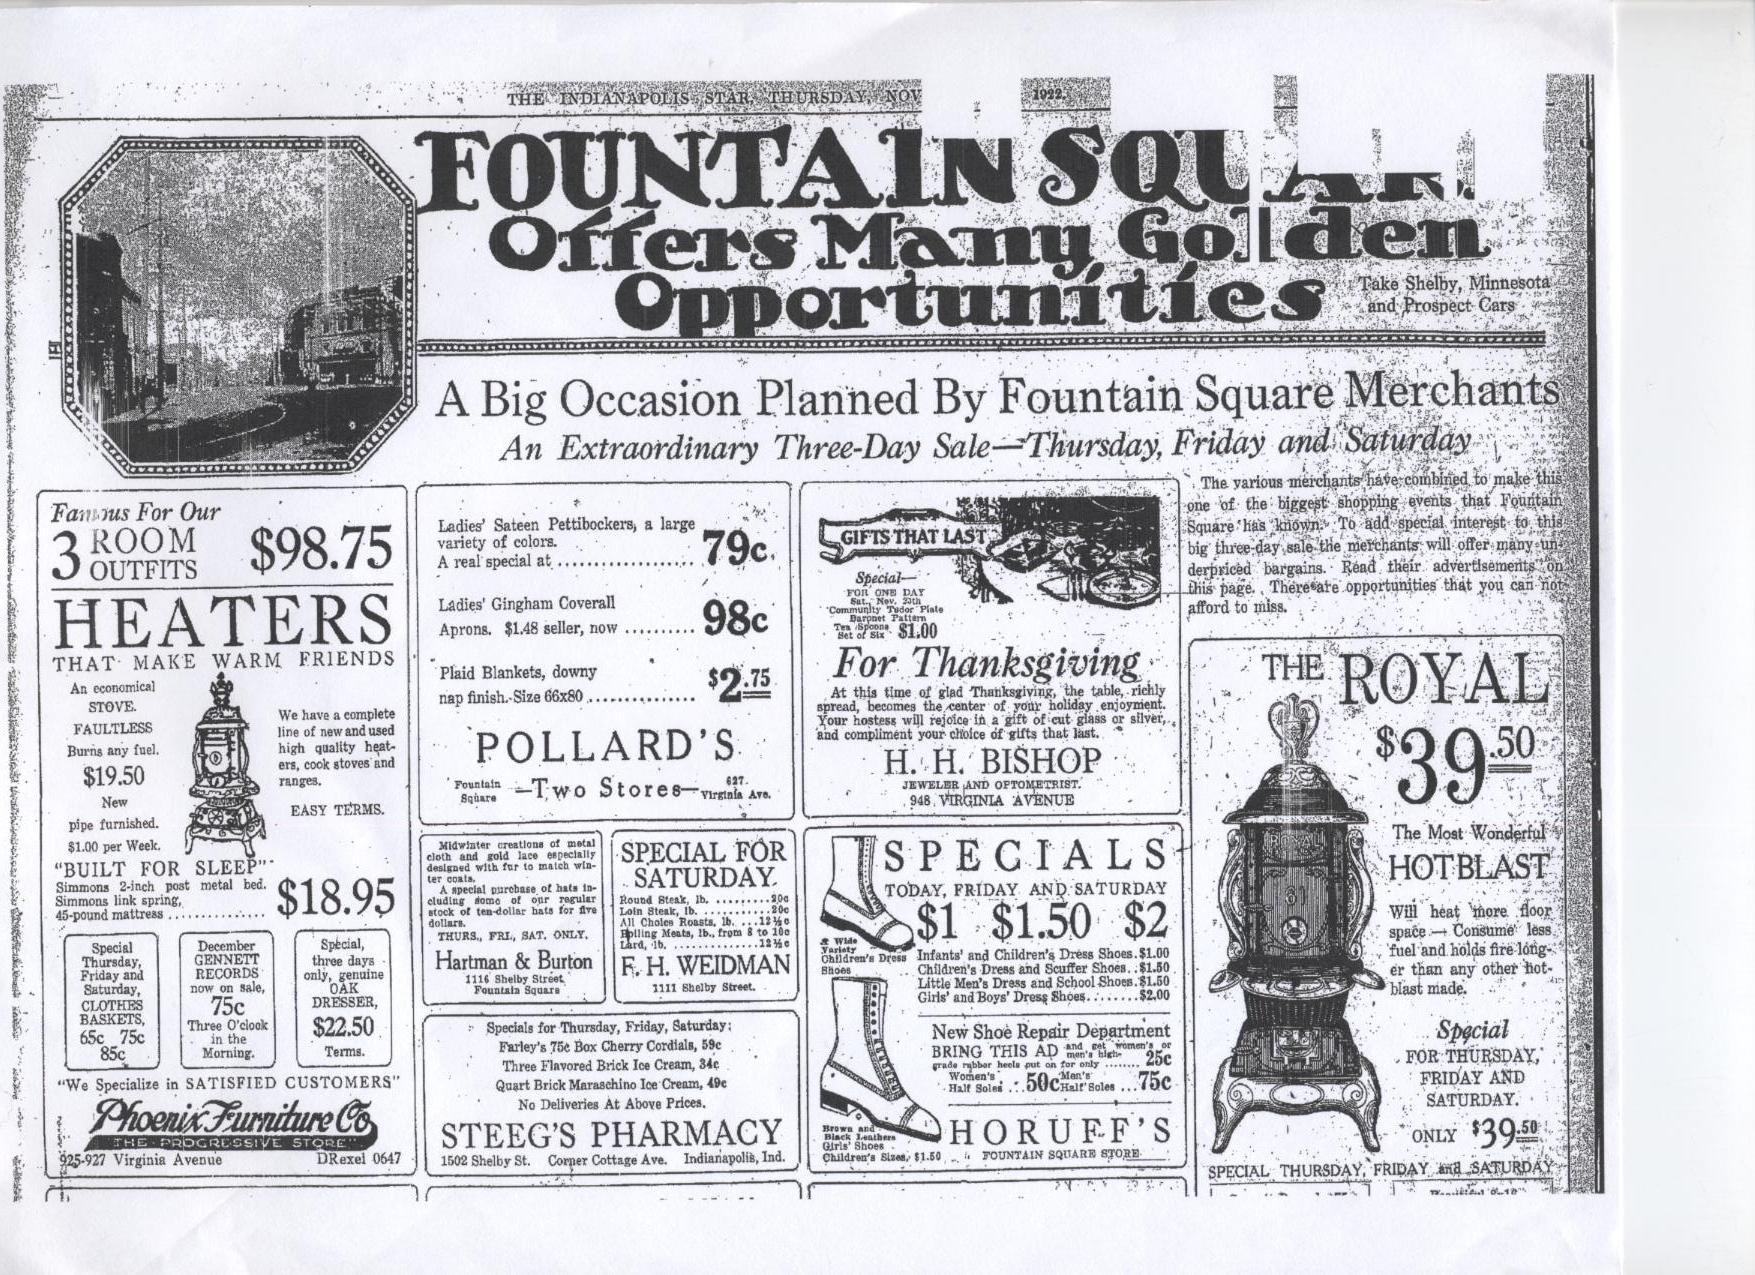 Sunday Adverts: A full page of Fountain Square